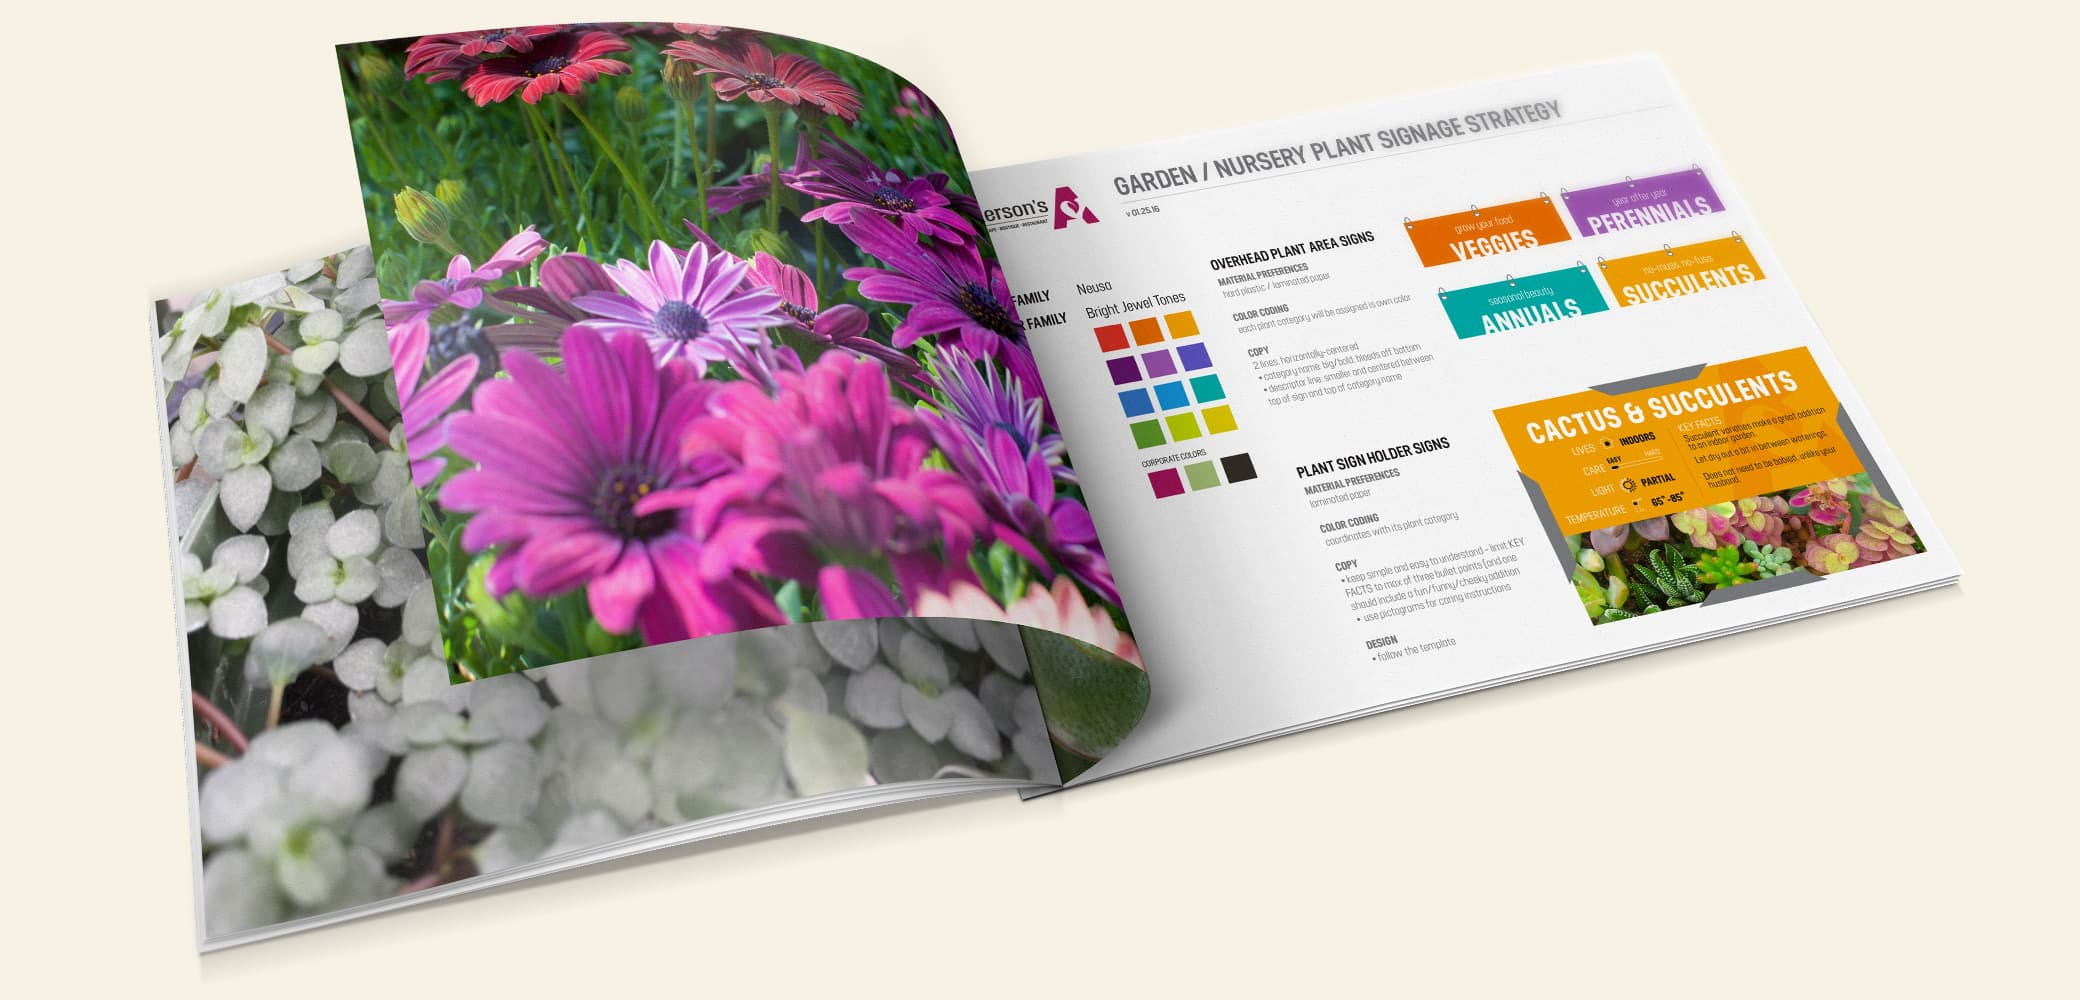 Anderson's Greenhouse Marketing Guide